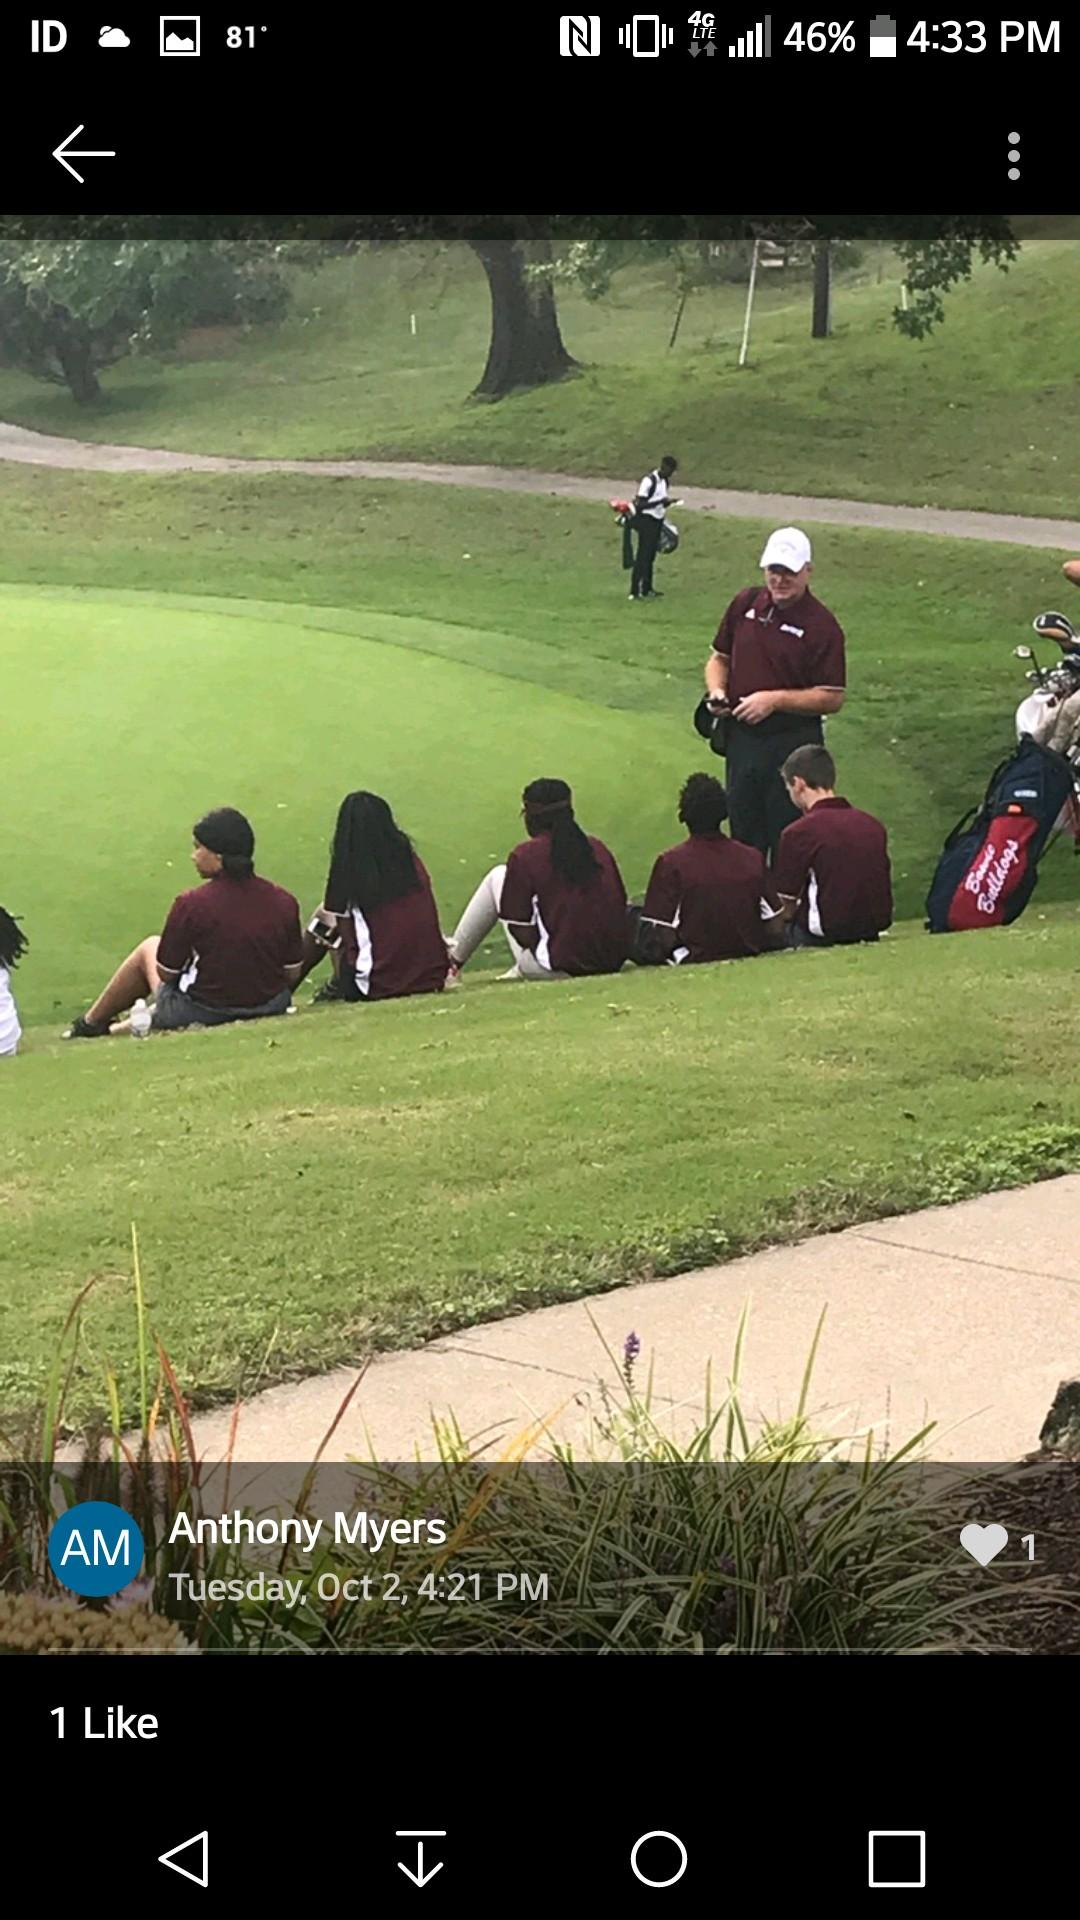 Congratulations to the Golf Team